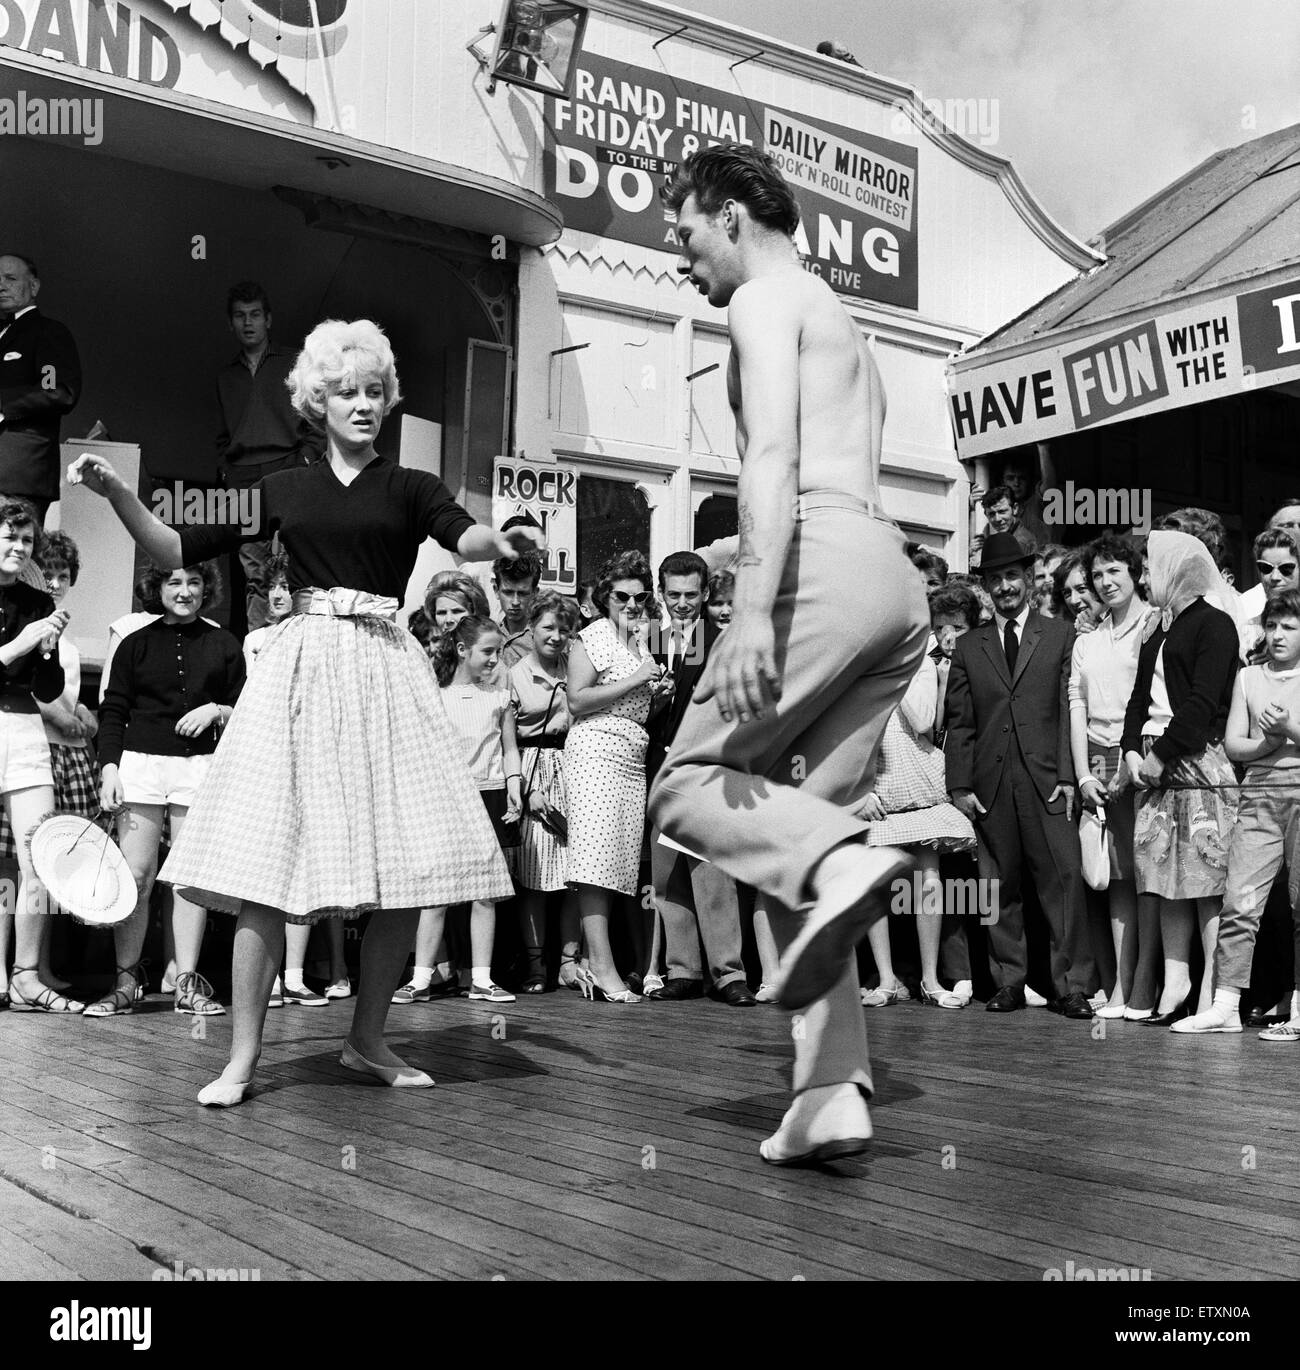 Dancing during a rock and roll session on the central pier in Blackpool, Lancashire. 4th August 1960. - Stock Image